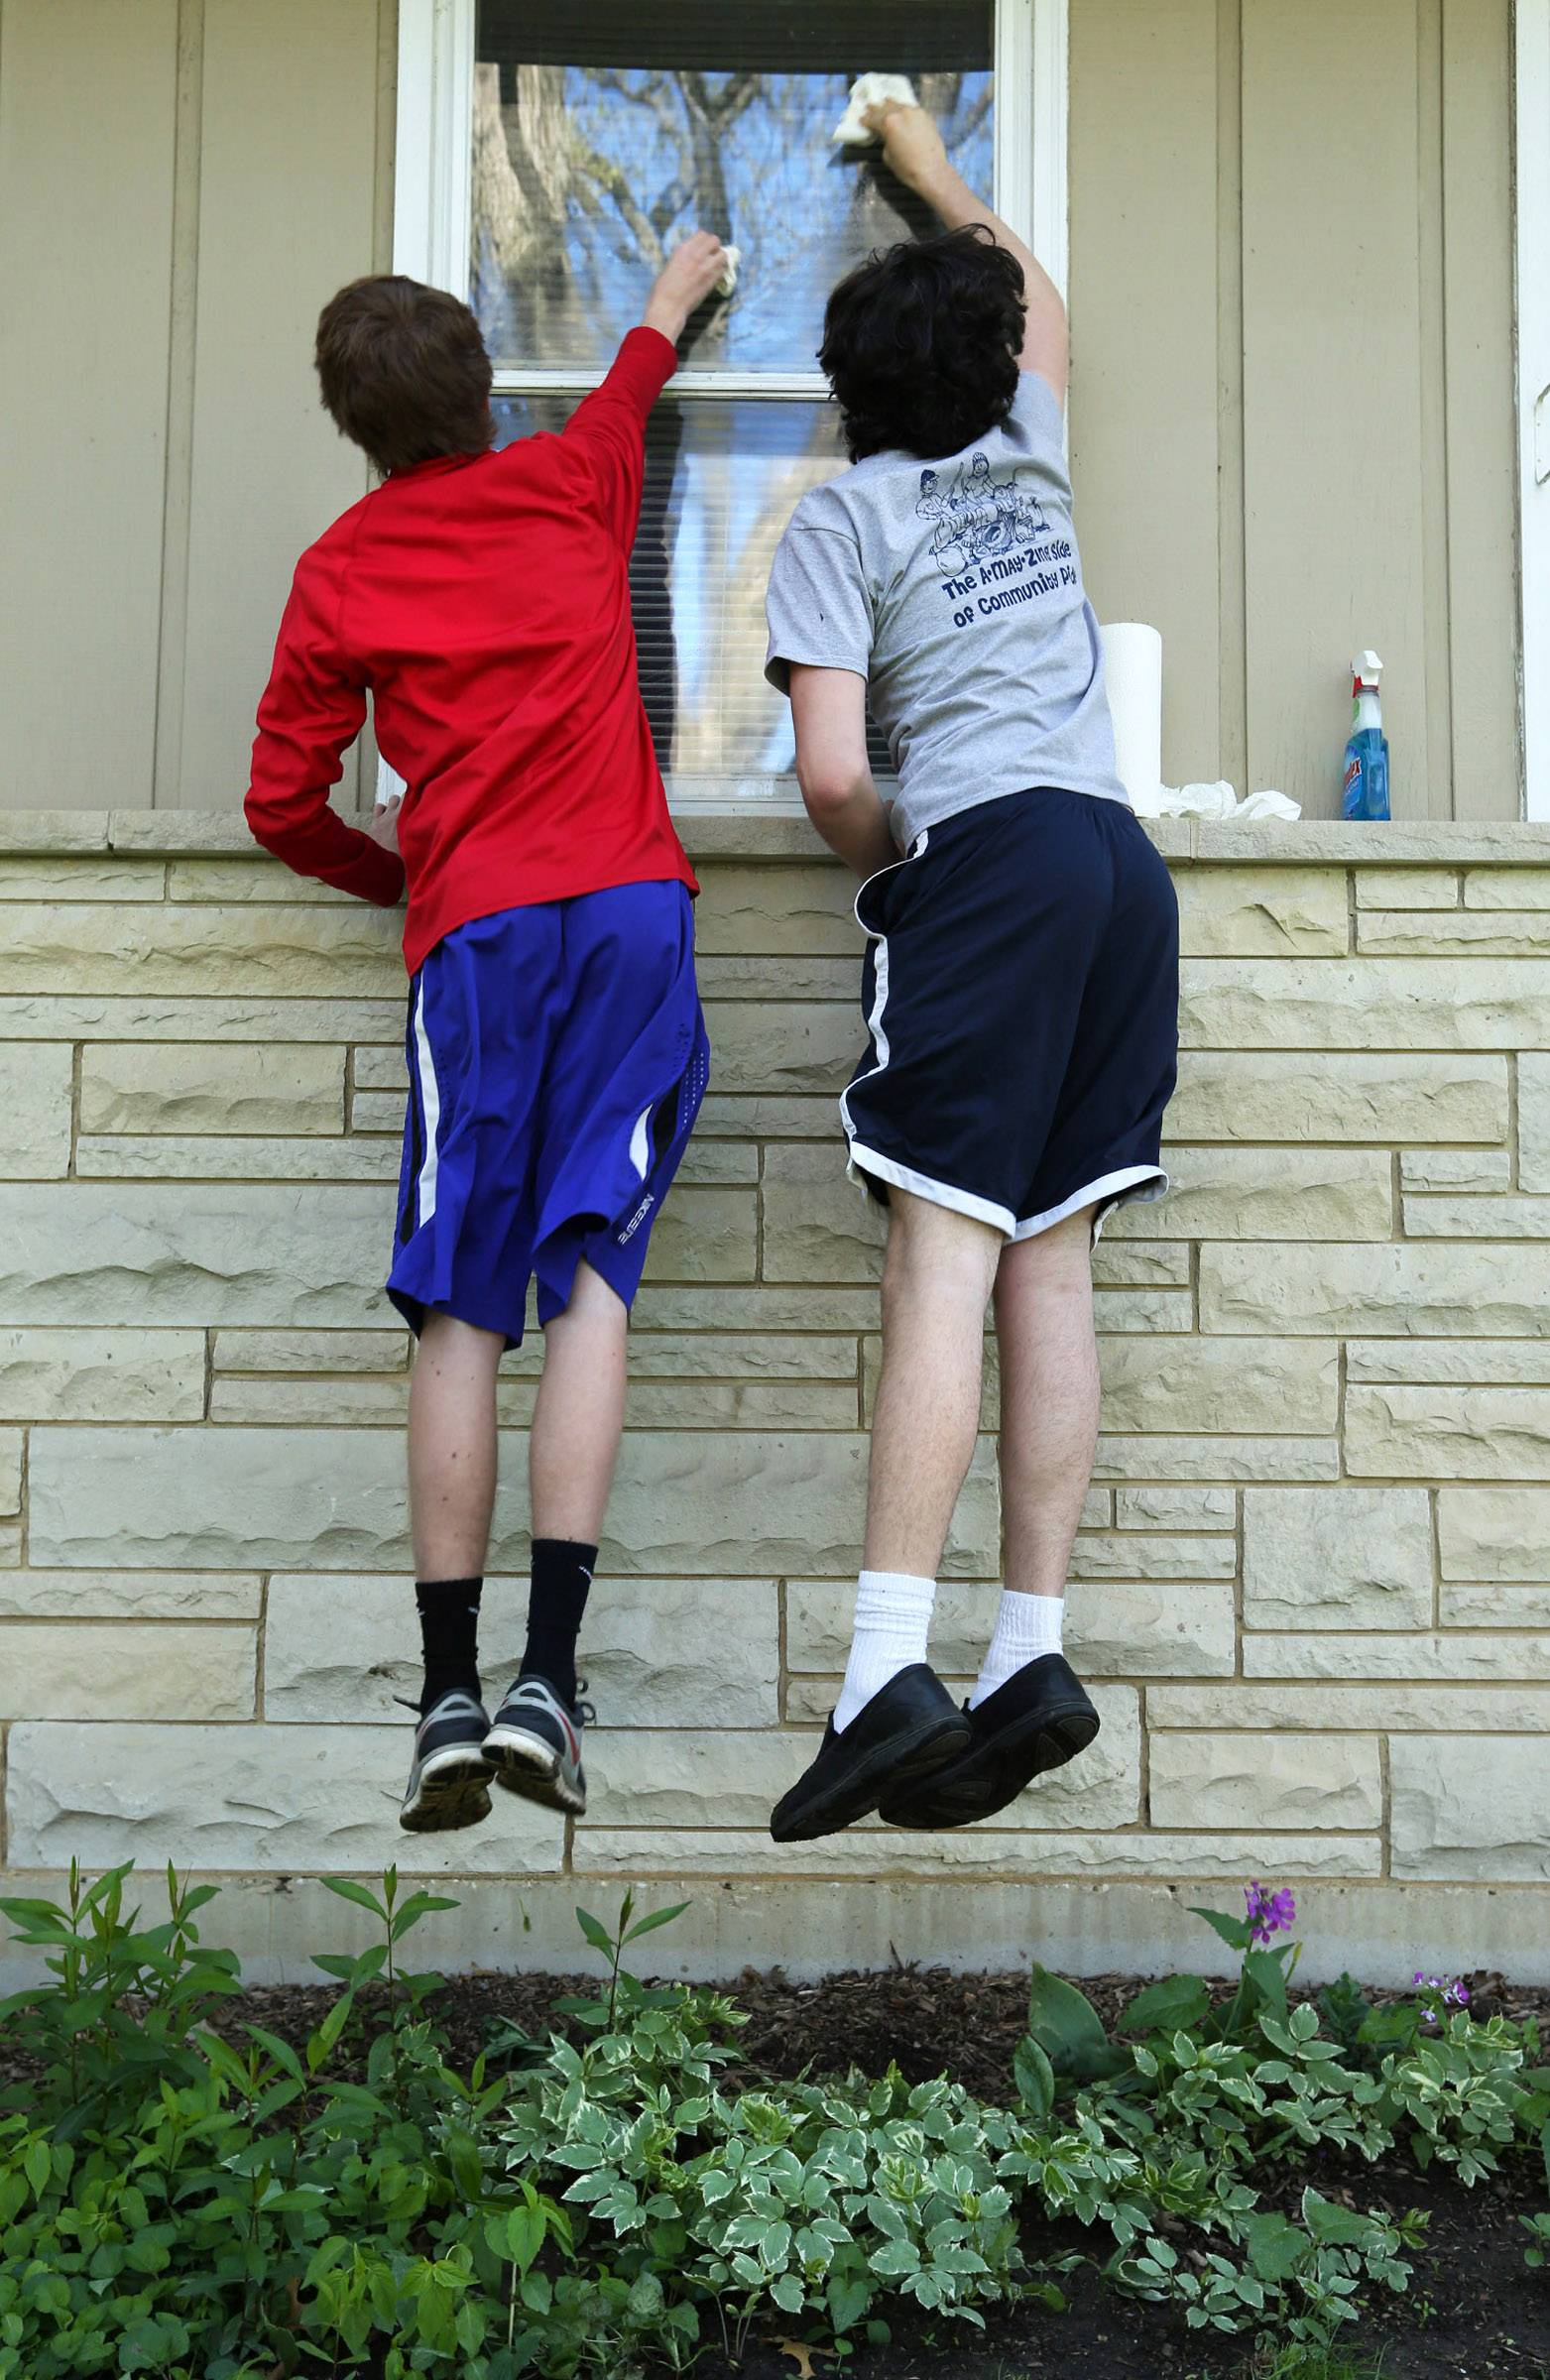 Carmel High School students Matt Pomierski, left, and Brendan Higgins, both 17 of Libertyville, jump to clean the top part of a side window at Agnes Radakovitz' house in Mundelein as part of the Village of Mundelein's annual A-May-Zing event on Saturday.